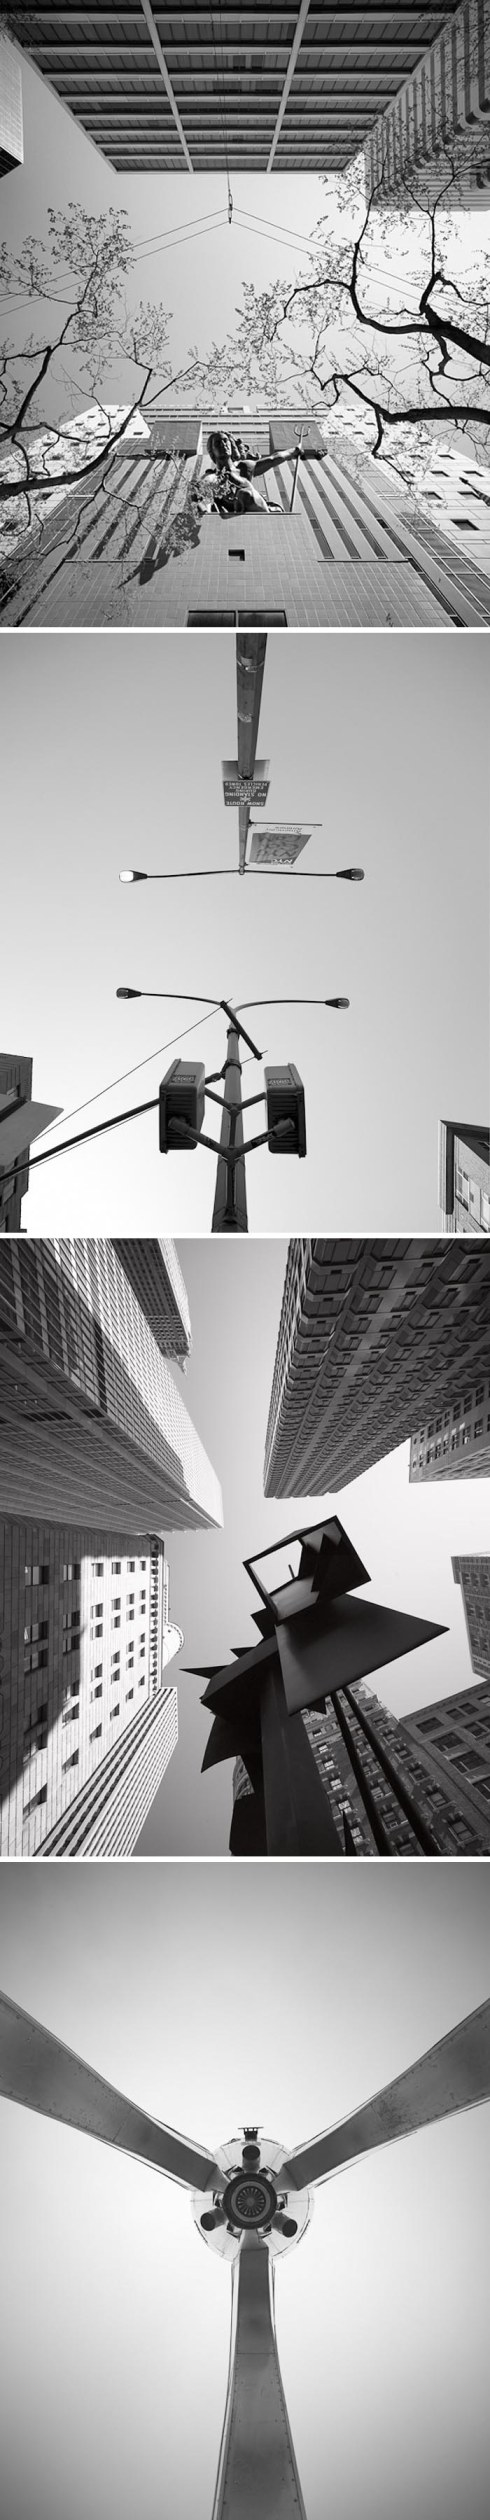 Cameron Neilson, 379 Broome Street, Straight Up, Contemporary Architectural Photography